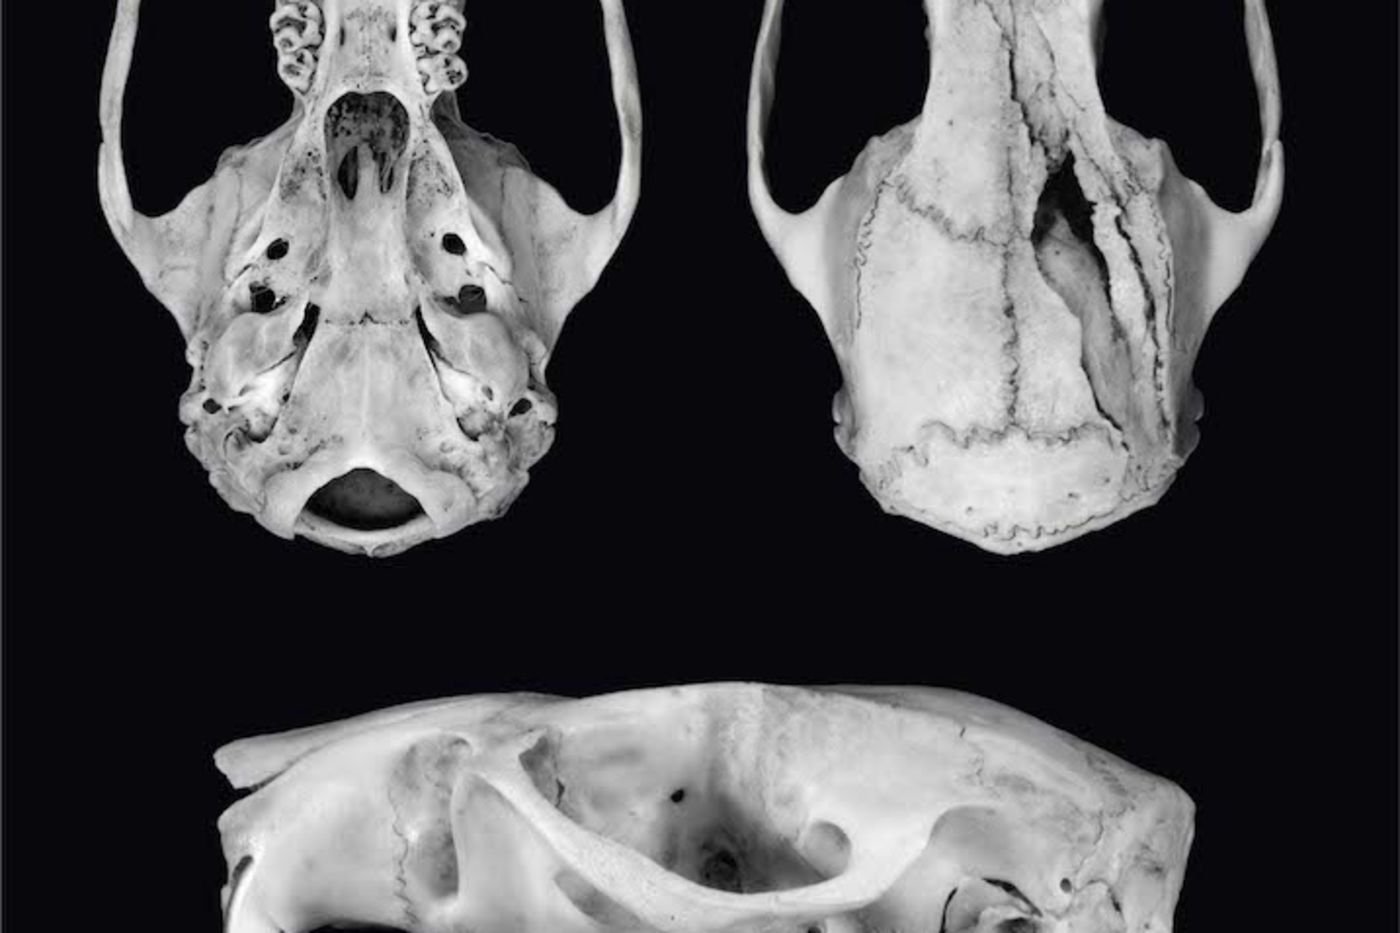 Black and white photography of an animal skull, from three angles